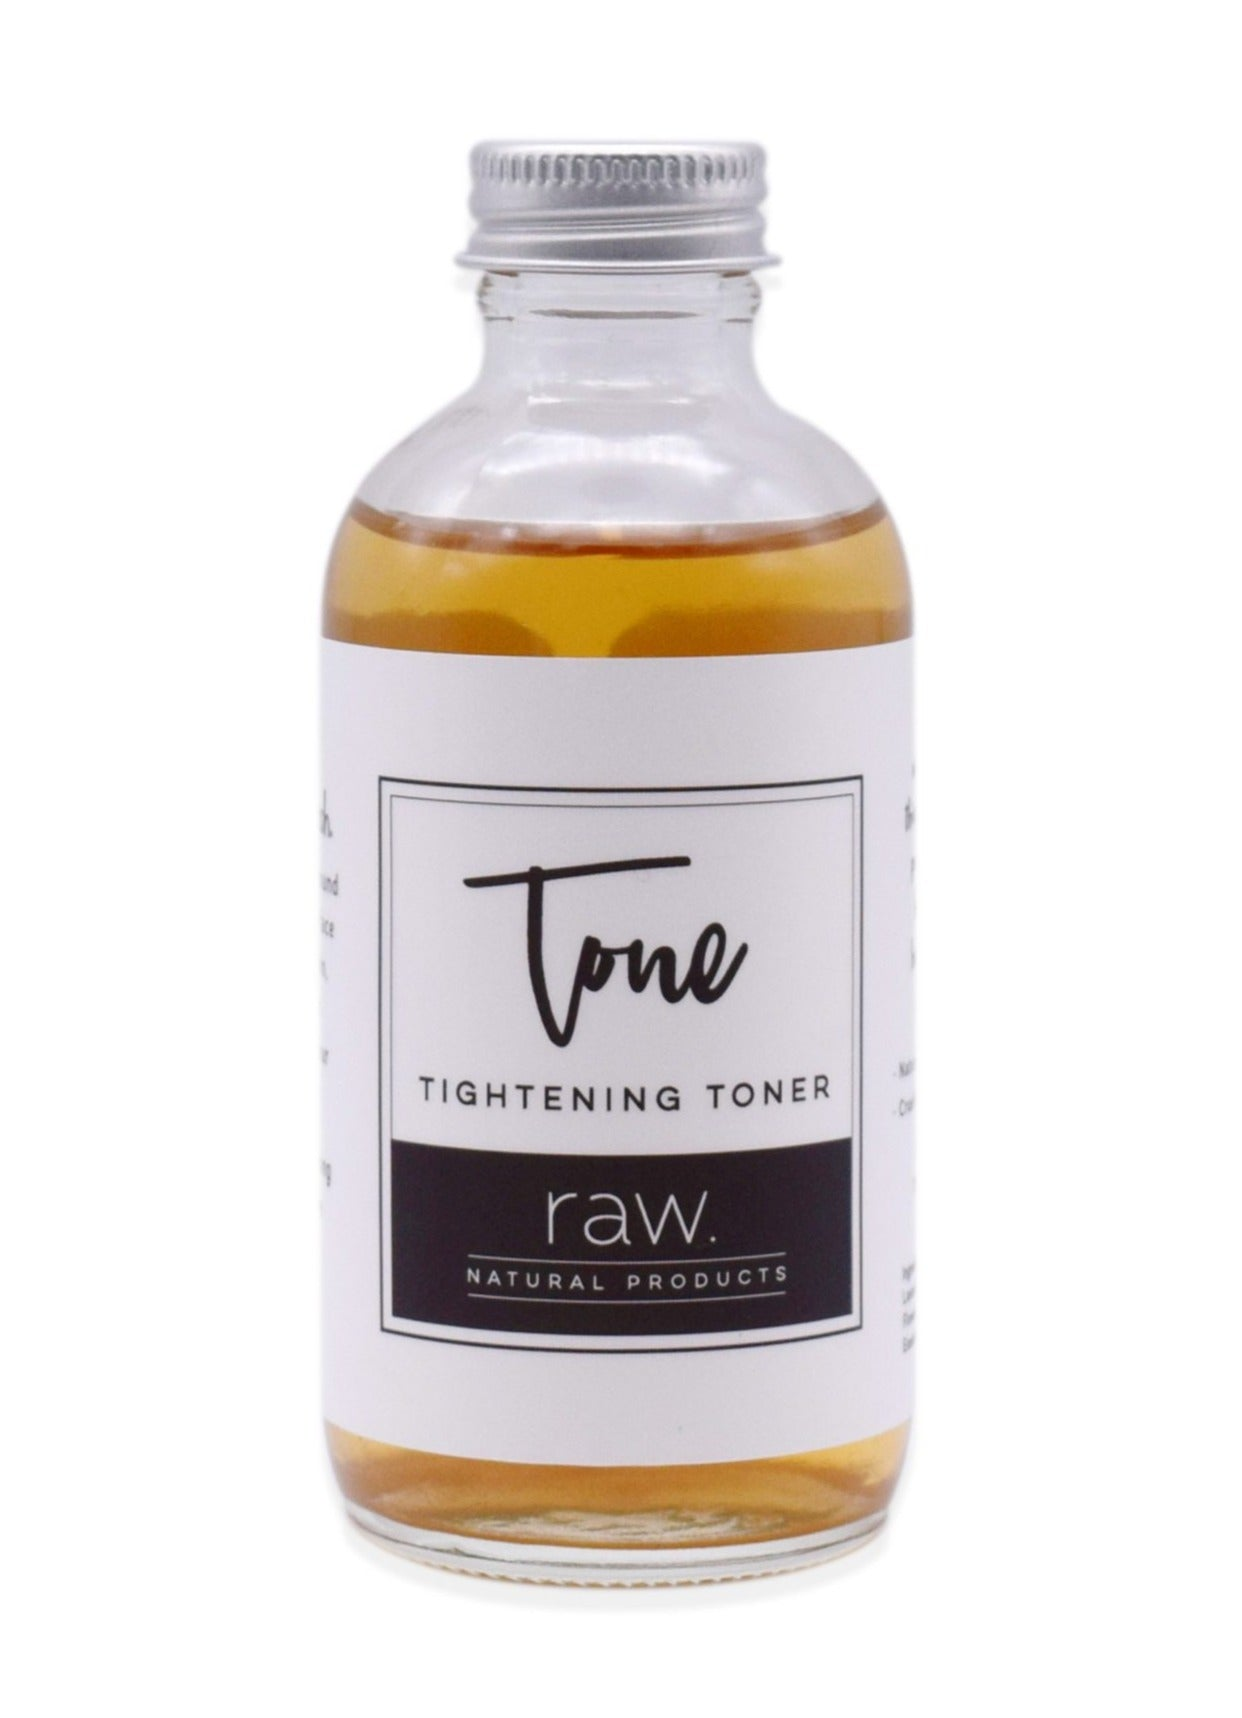 Tone Facial Tightening Toner